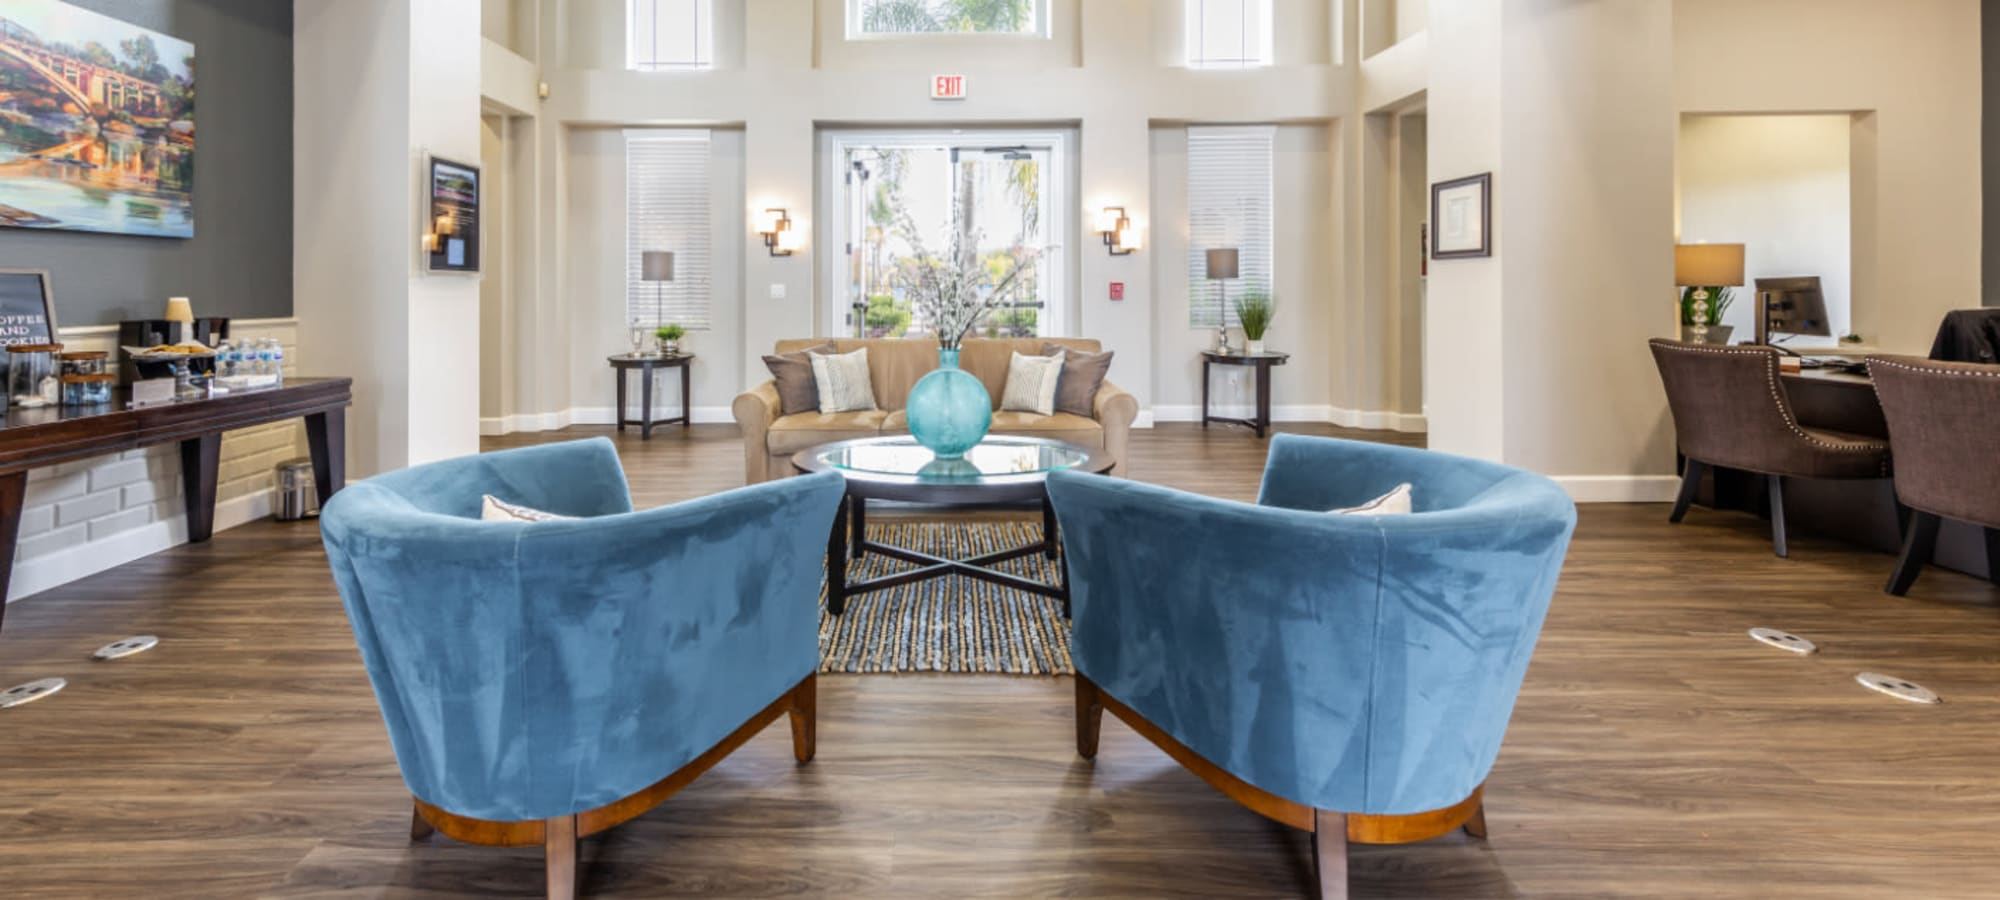 Schedule a tour of The Fairmont at Willow Creek in Folsom, California